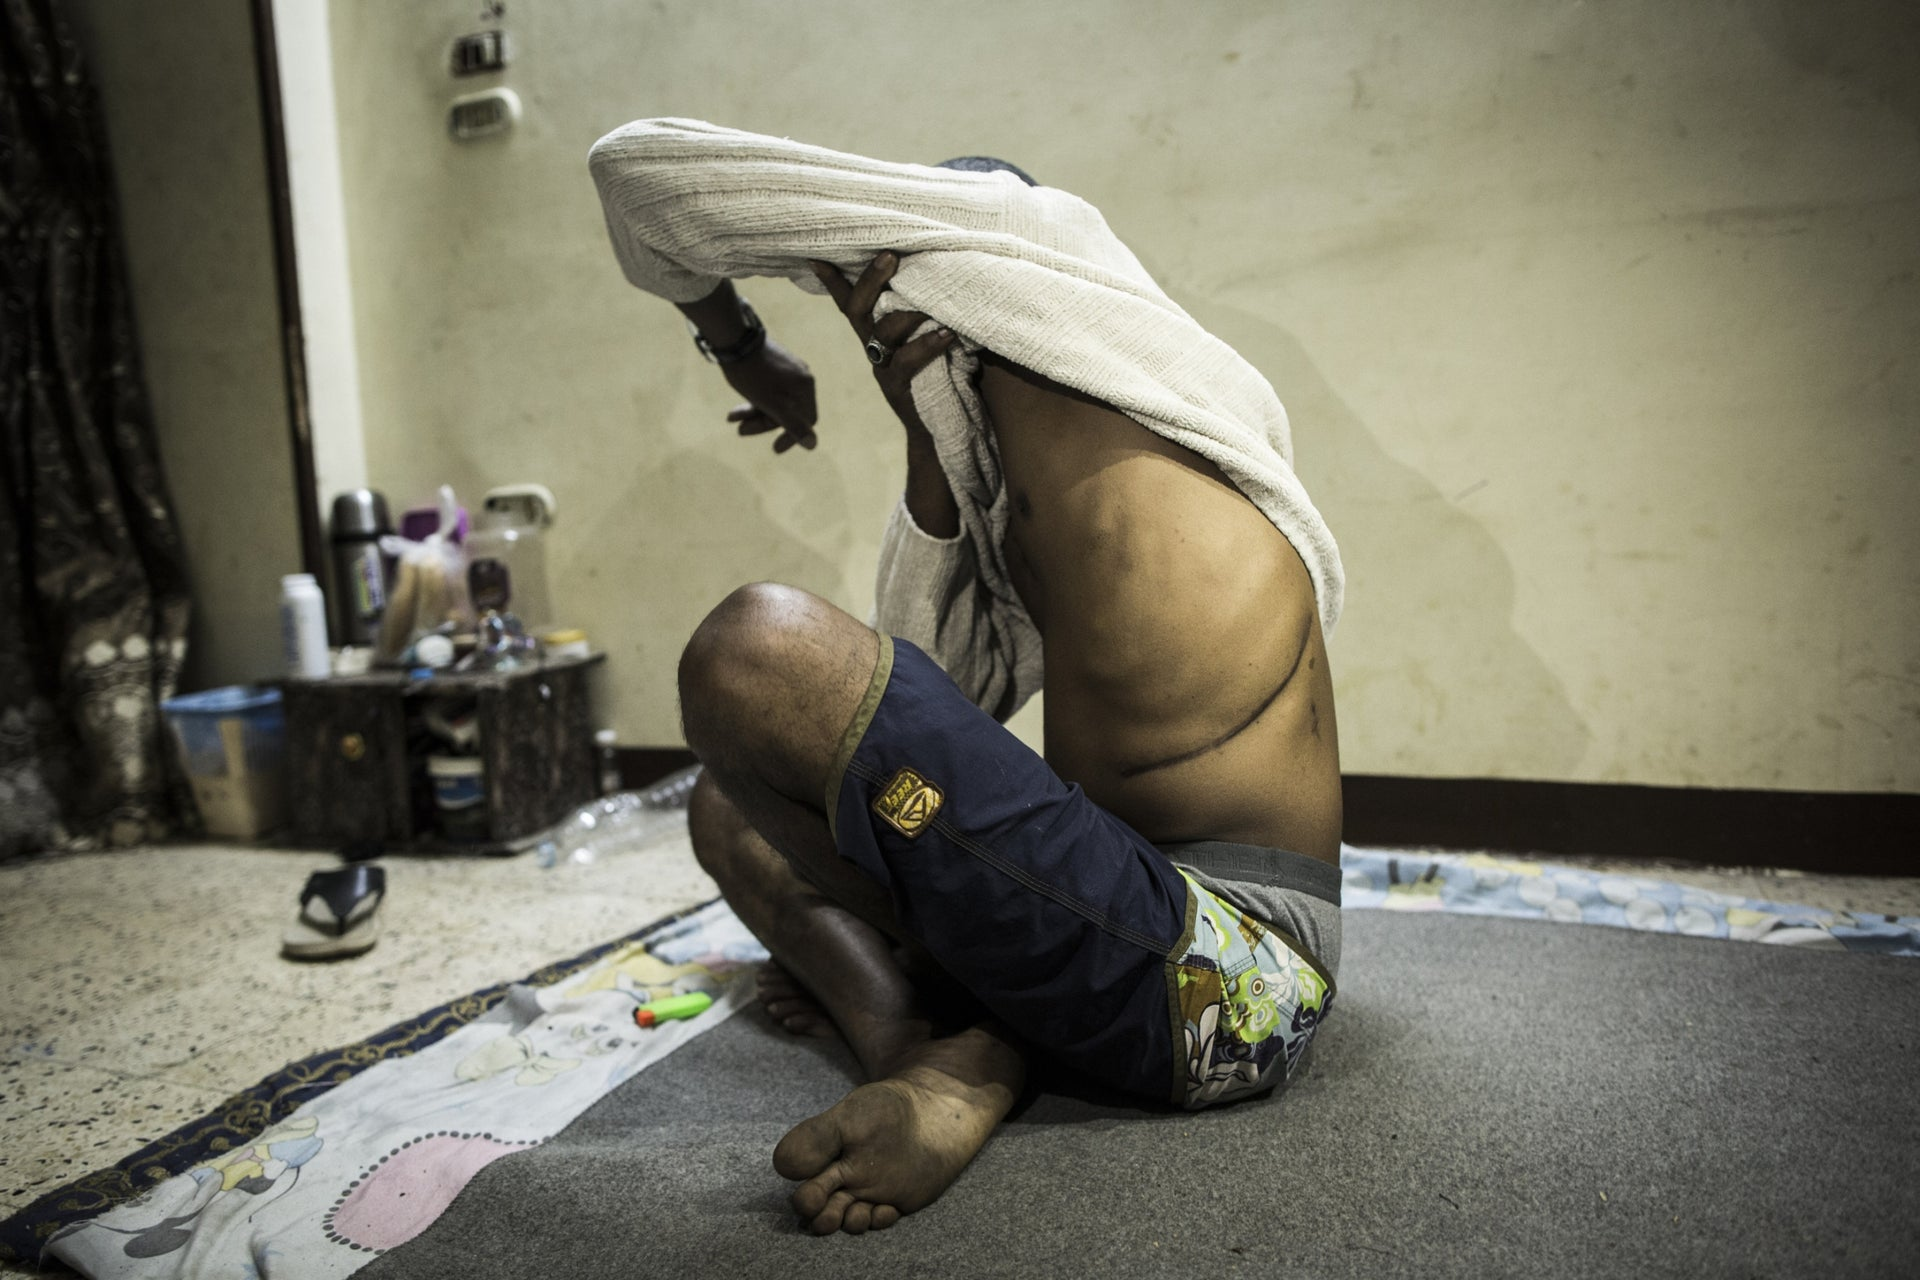 A victim of illegal organ harvesting in Egypt shows his scar.